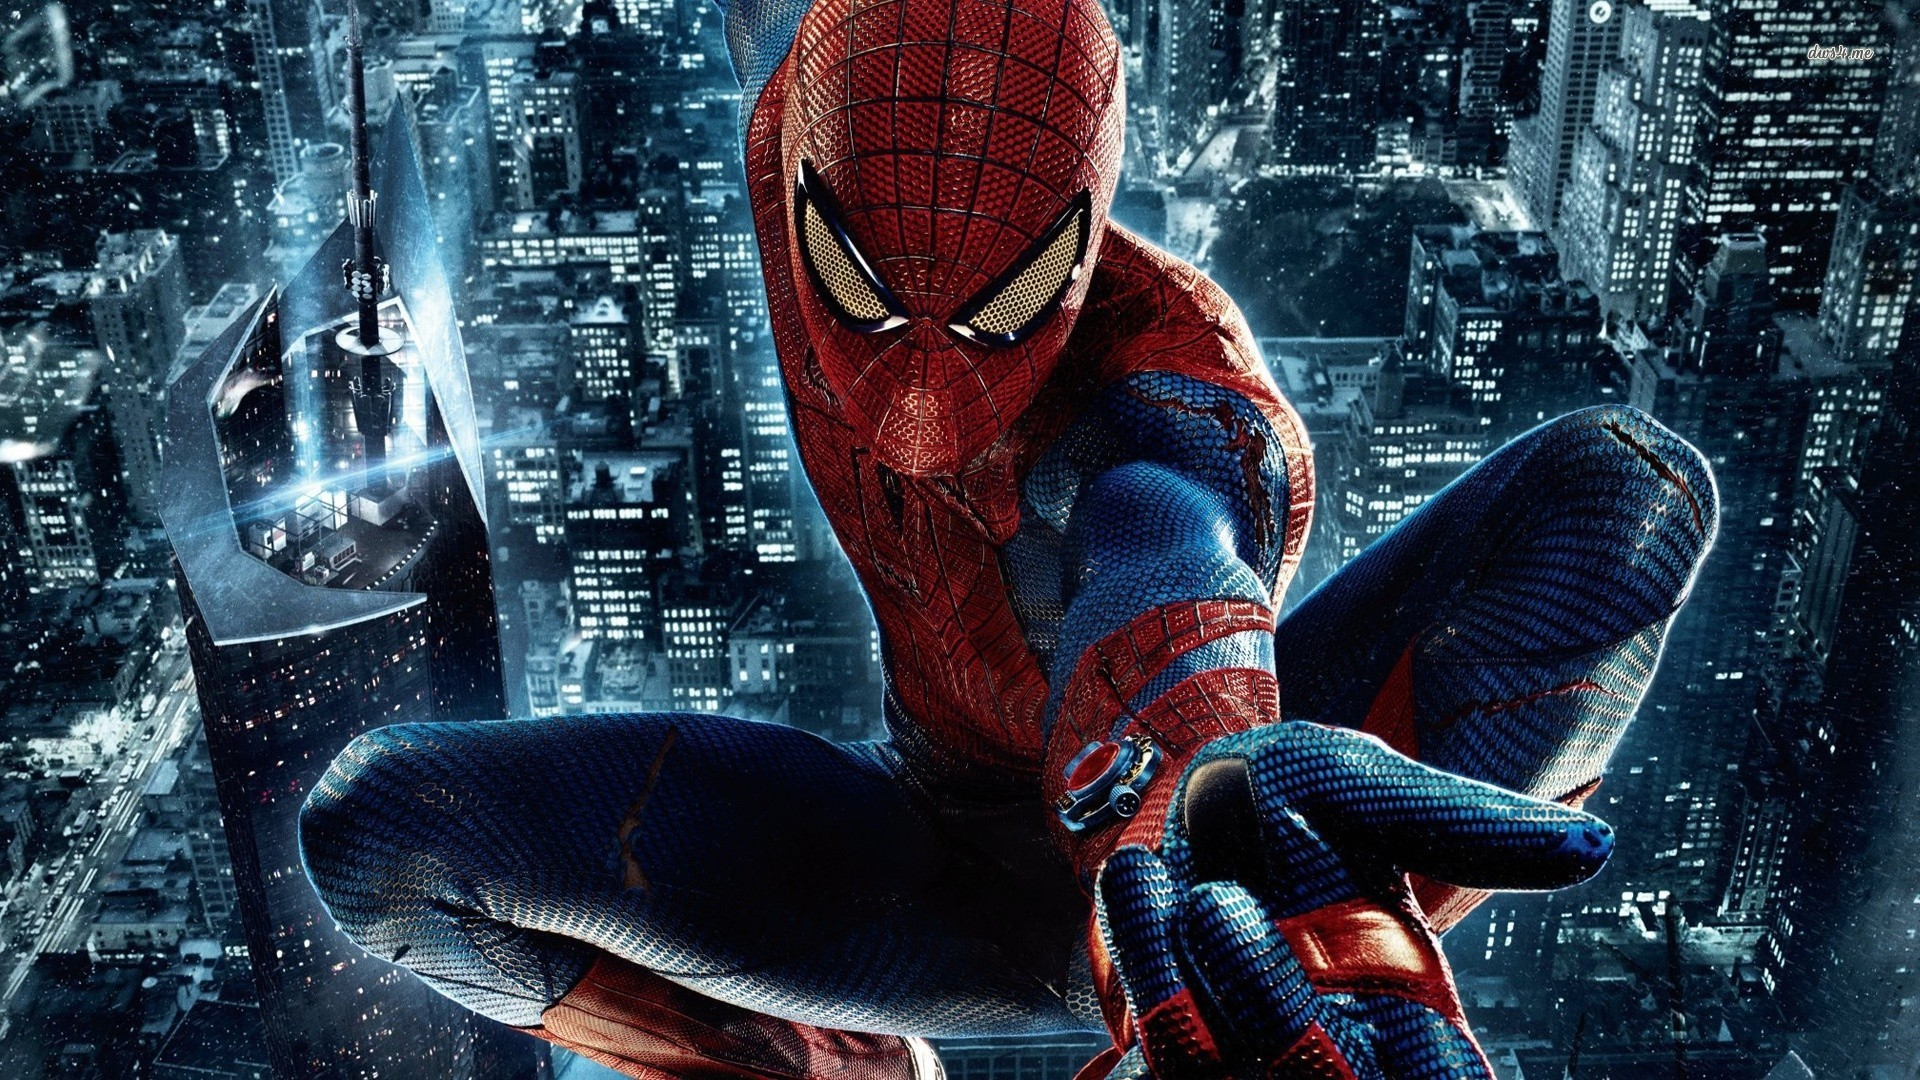 spider man - photo #13